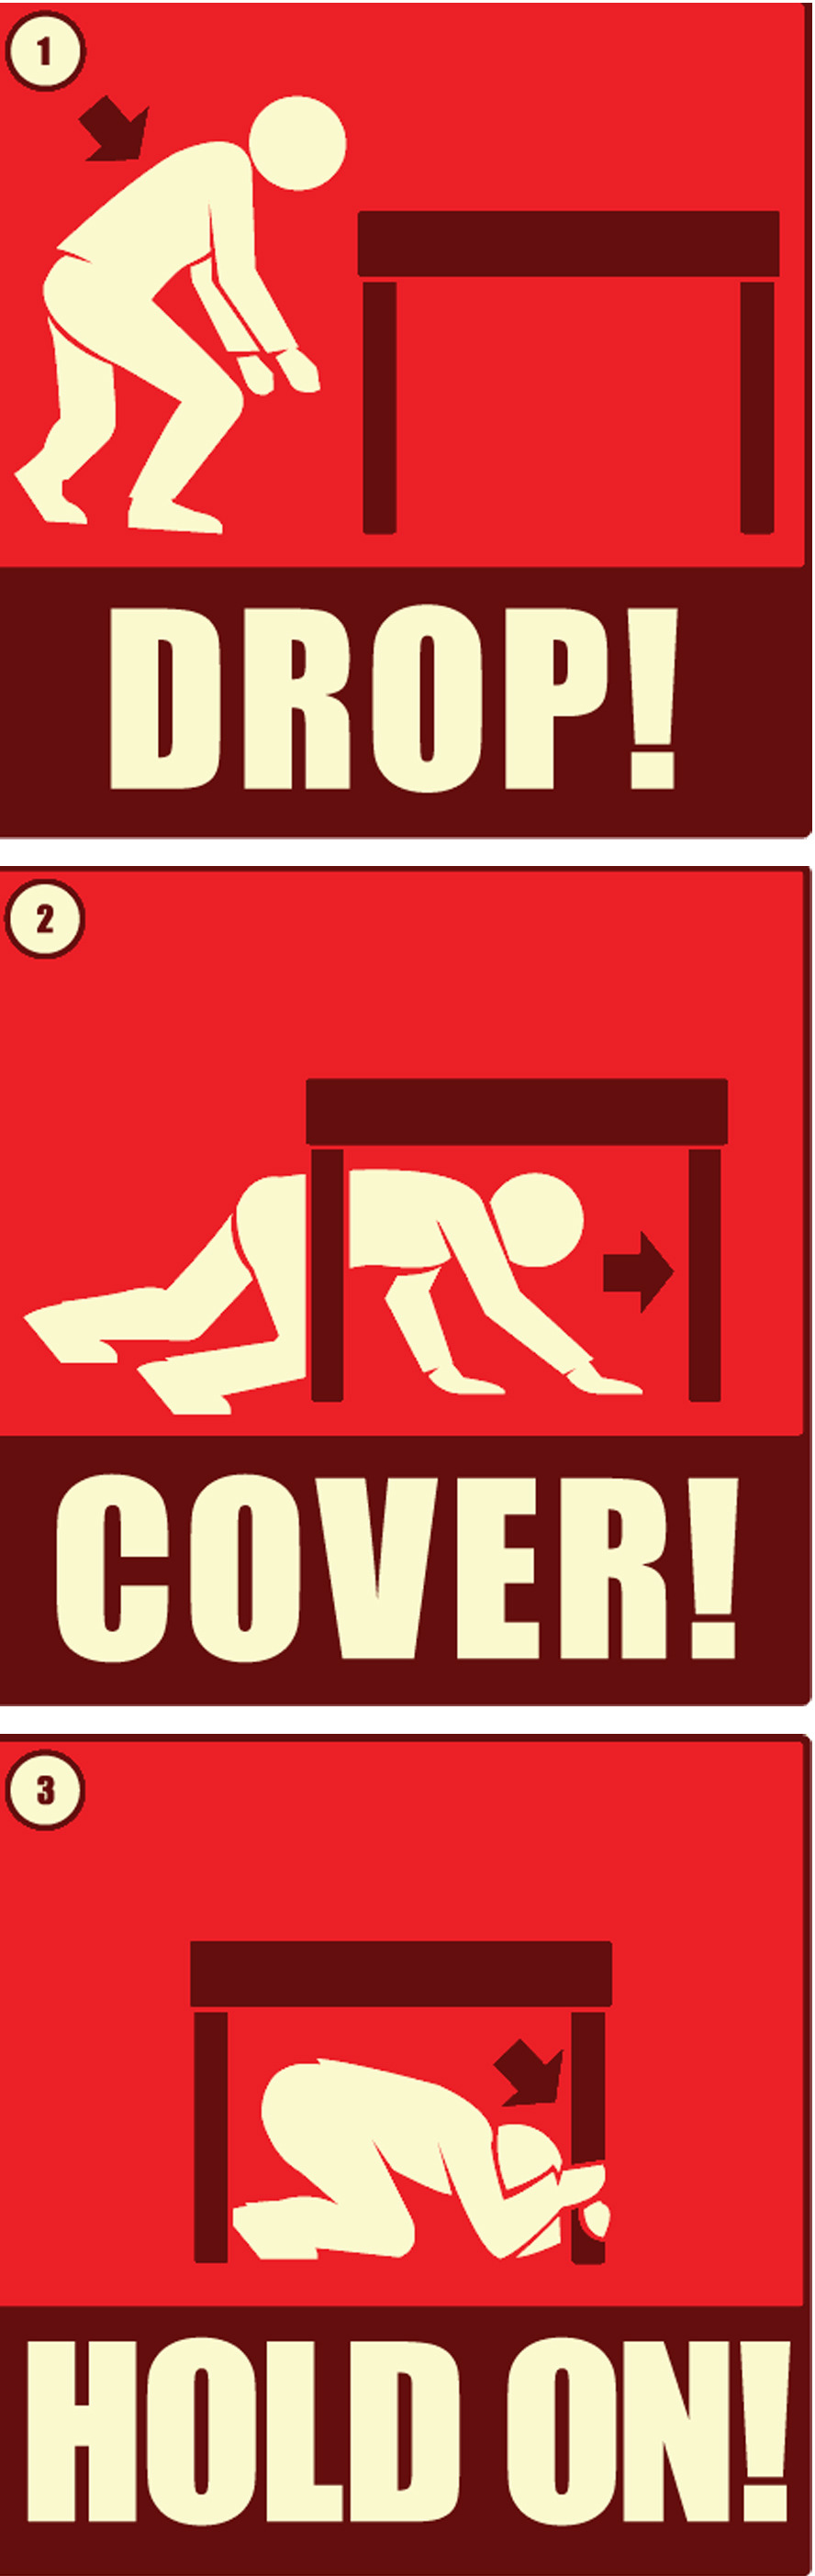 Earthquake clipart zone Earthquake Cover you on! Safety